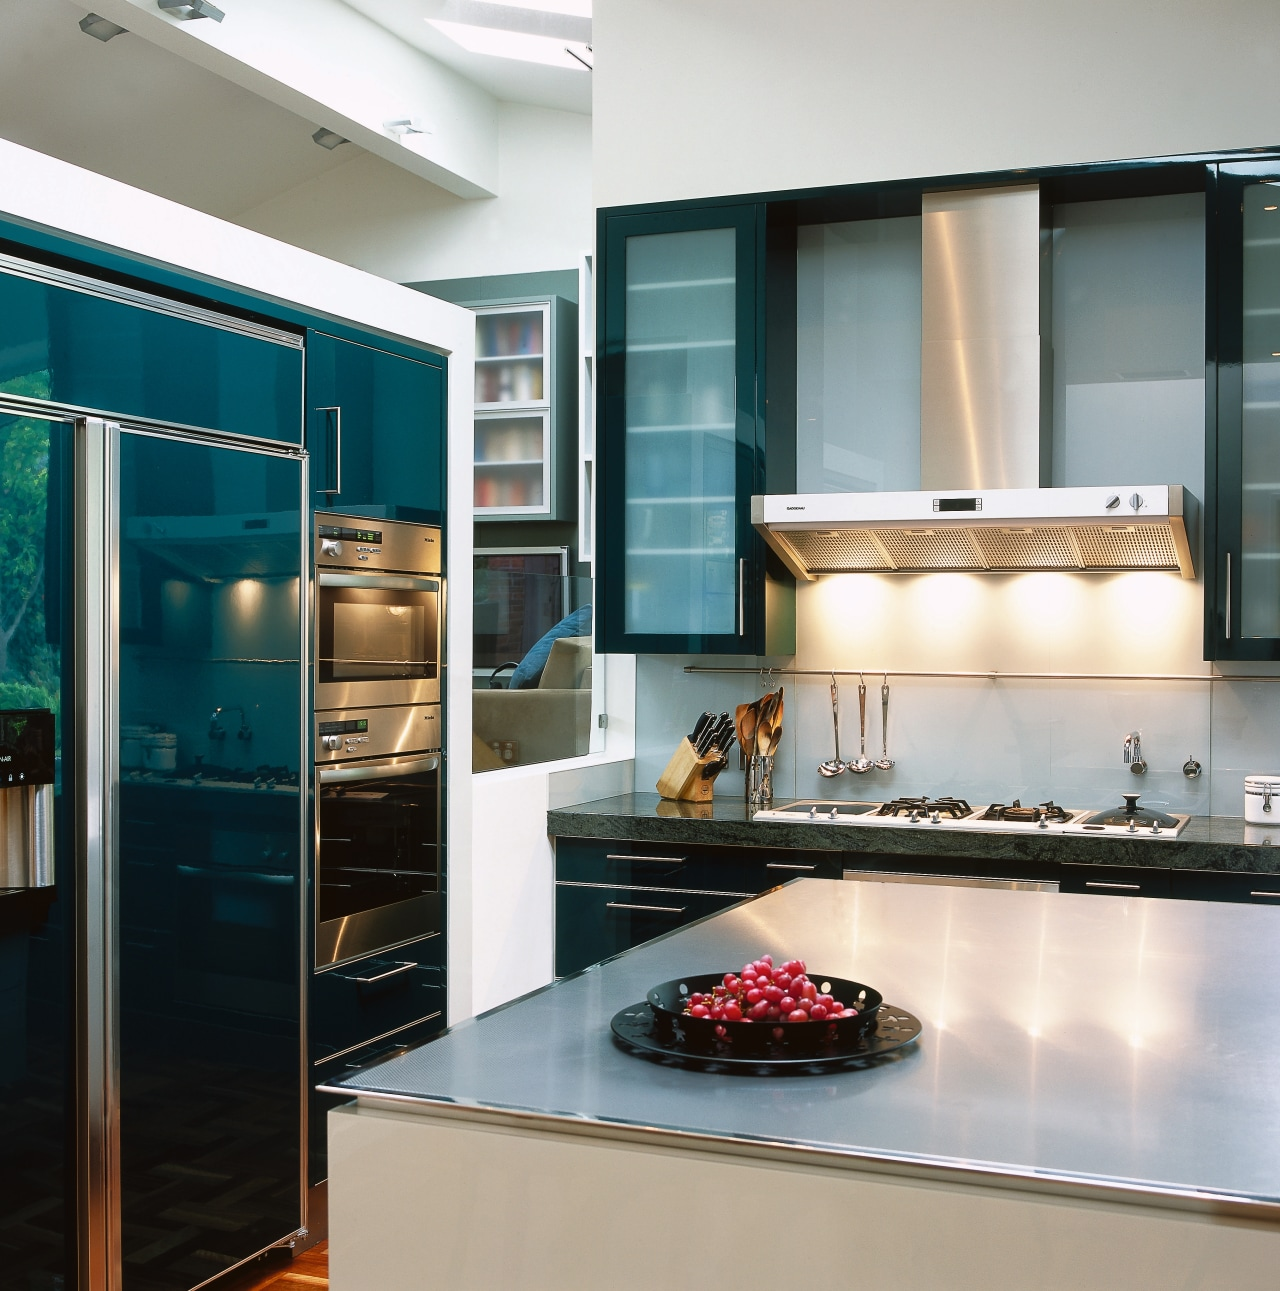 view of the food preparation area showing the cabinetry, countertop, home appliance, interior design, kitchen, room, gray